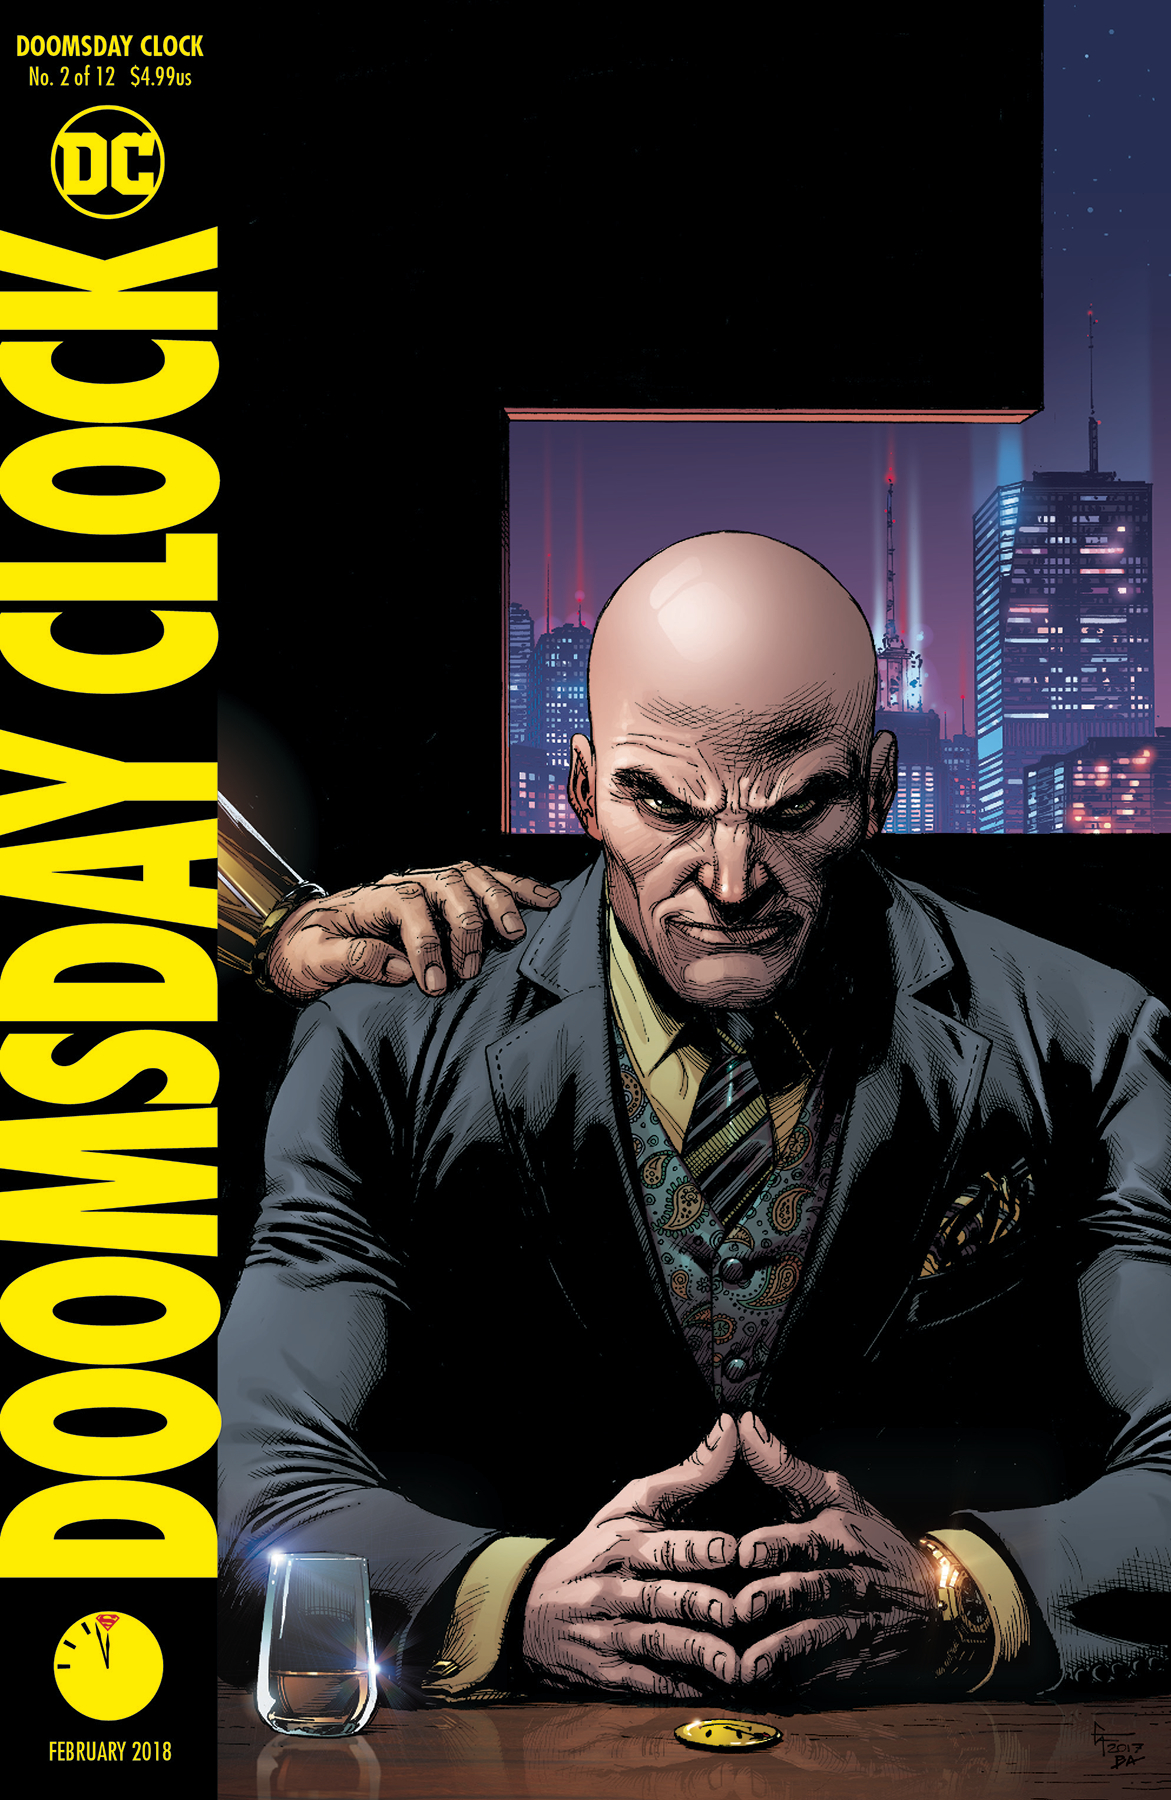 DOOMSDAY CLOCK #2 (OF 12) VAR ED